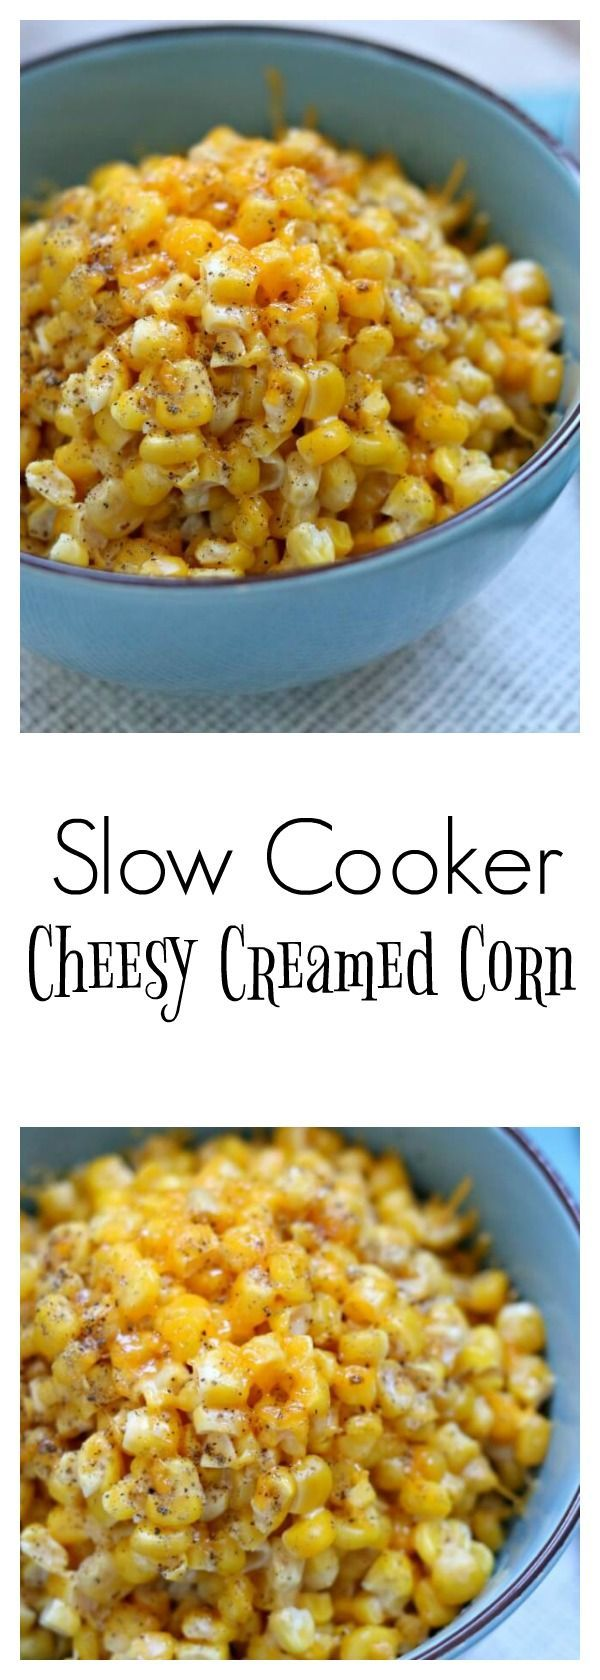 Slow Cooker Cheesy Creamed Corn: an easy slow cooker recipe for a ...